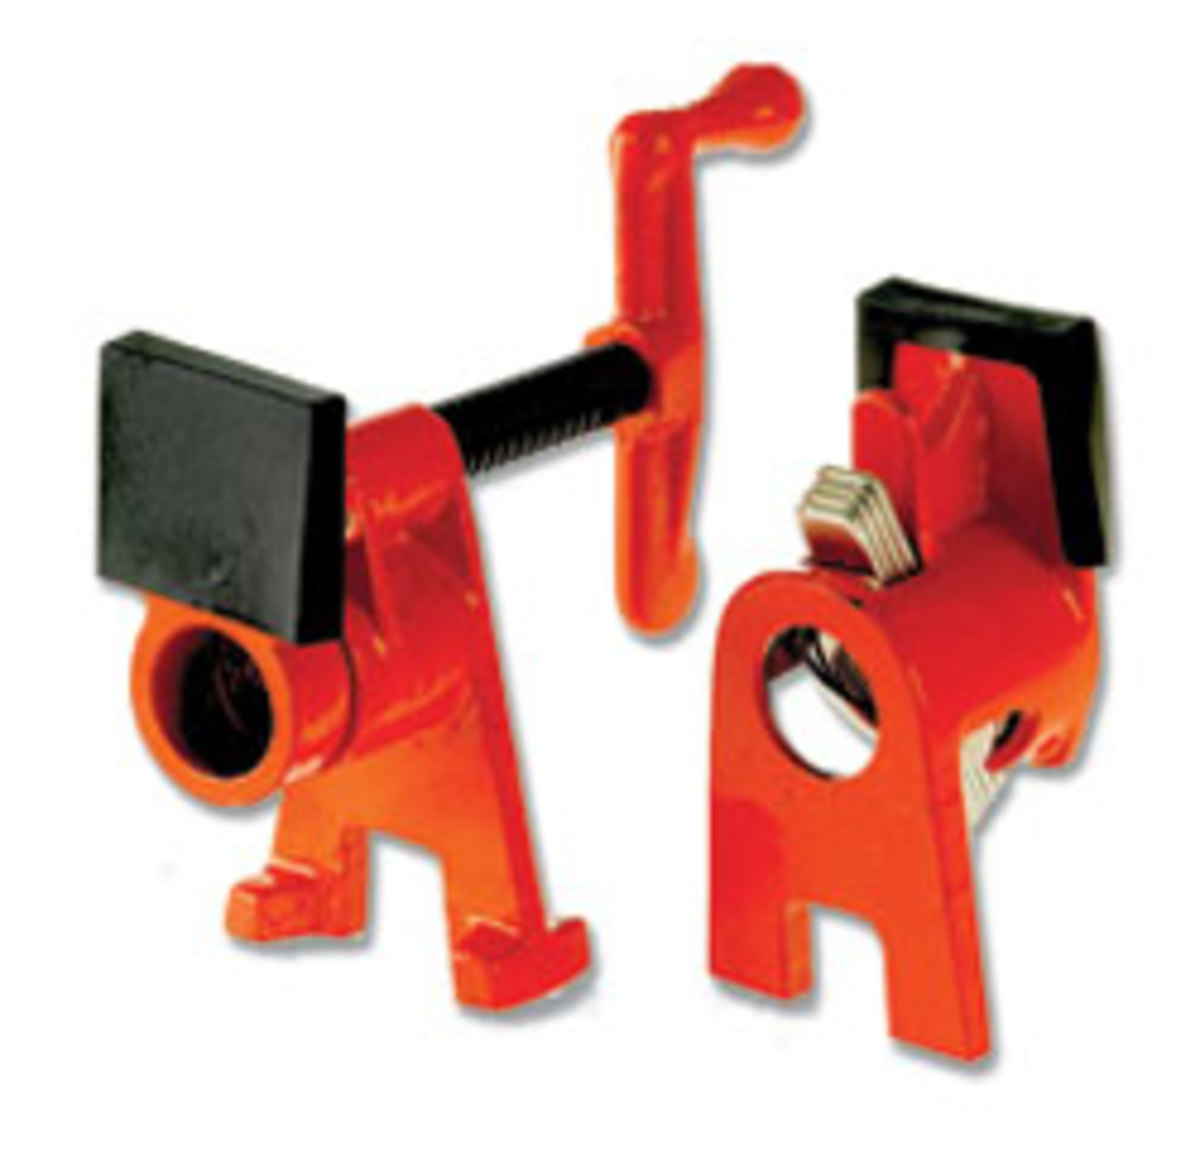 The Bessey H-Series Pipe Clamp features a taller design to lift work above the surface.